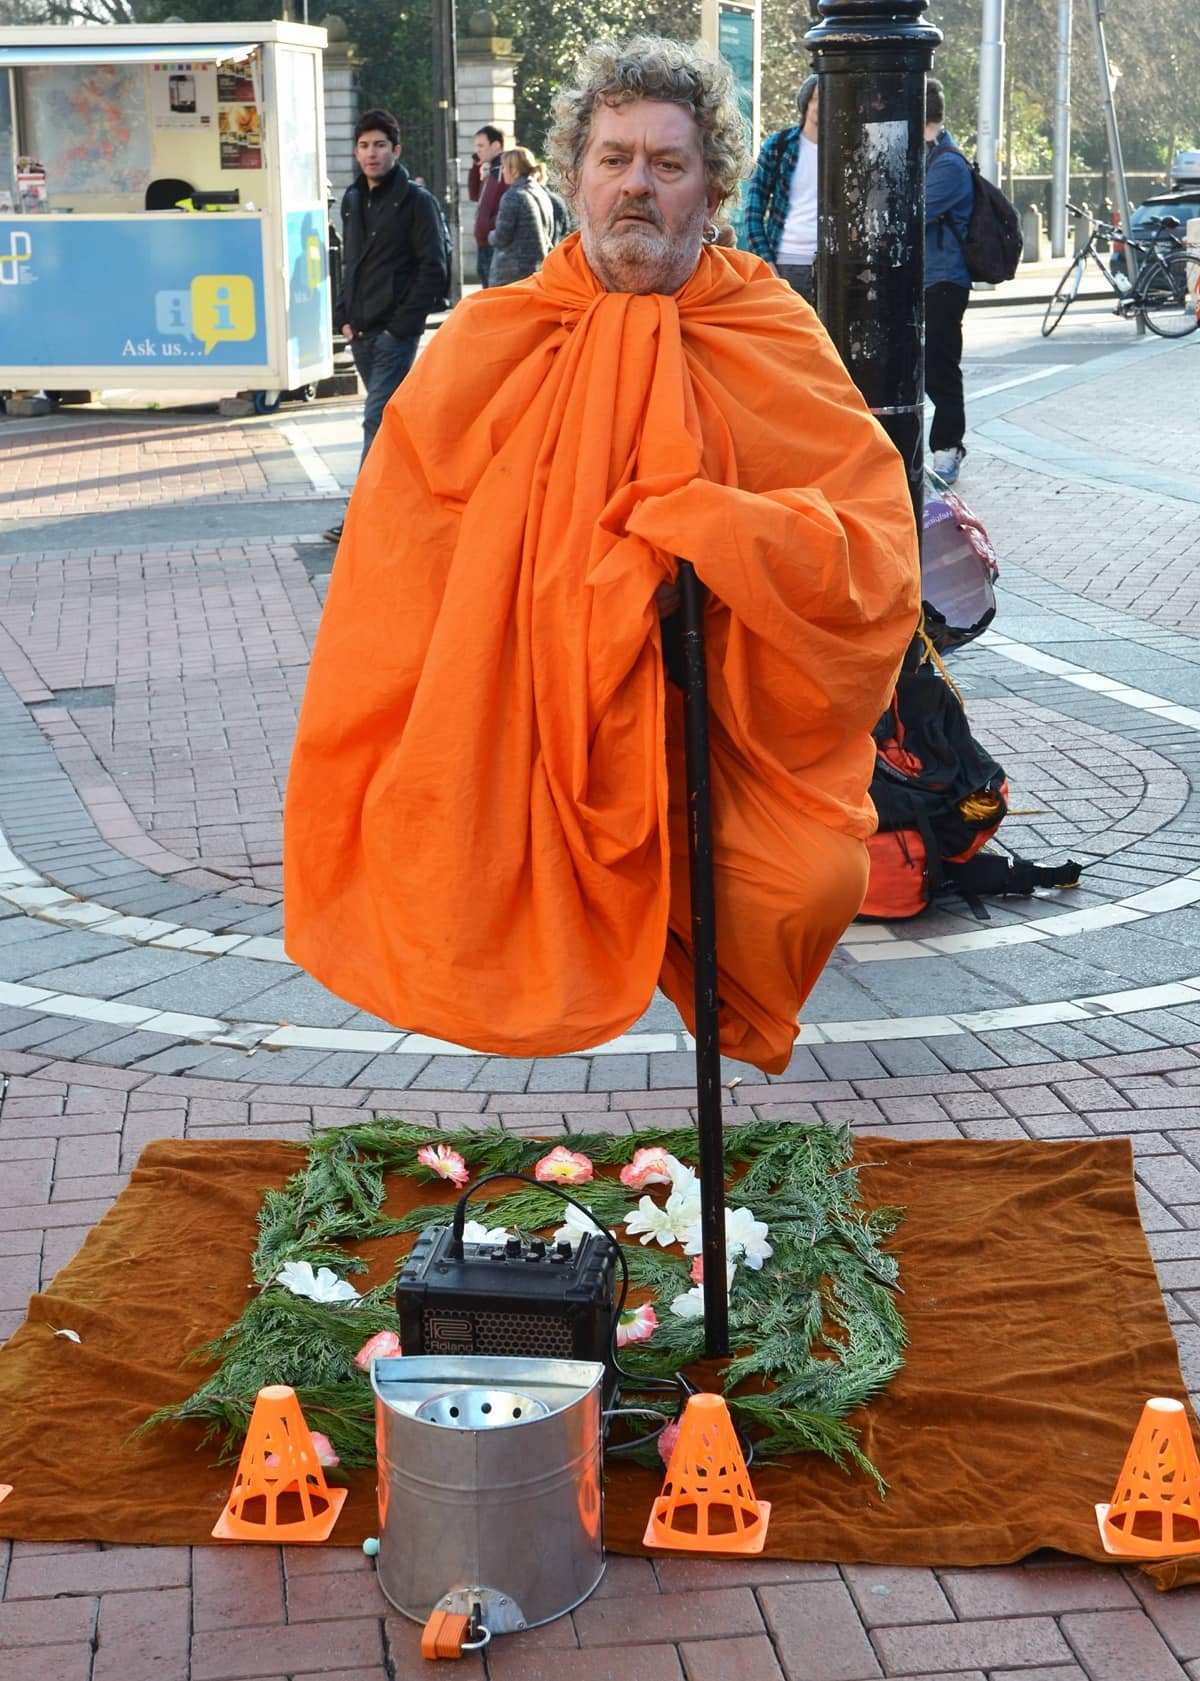 A street entertainer amazes shoppers on Galway's Shop Street in Dublin, Ireland, with his apparent ability to levitate